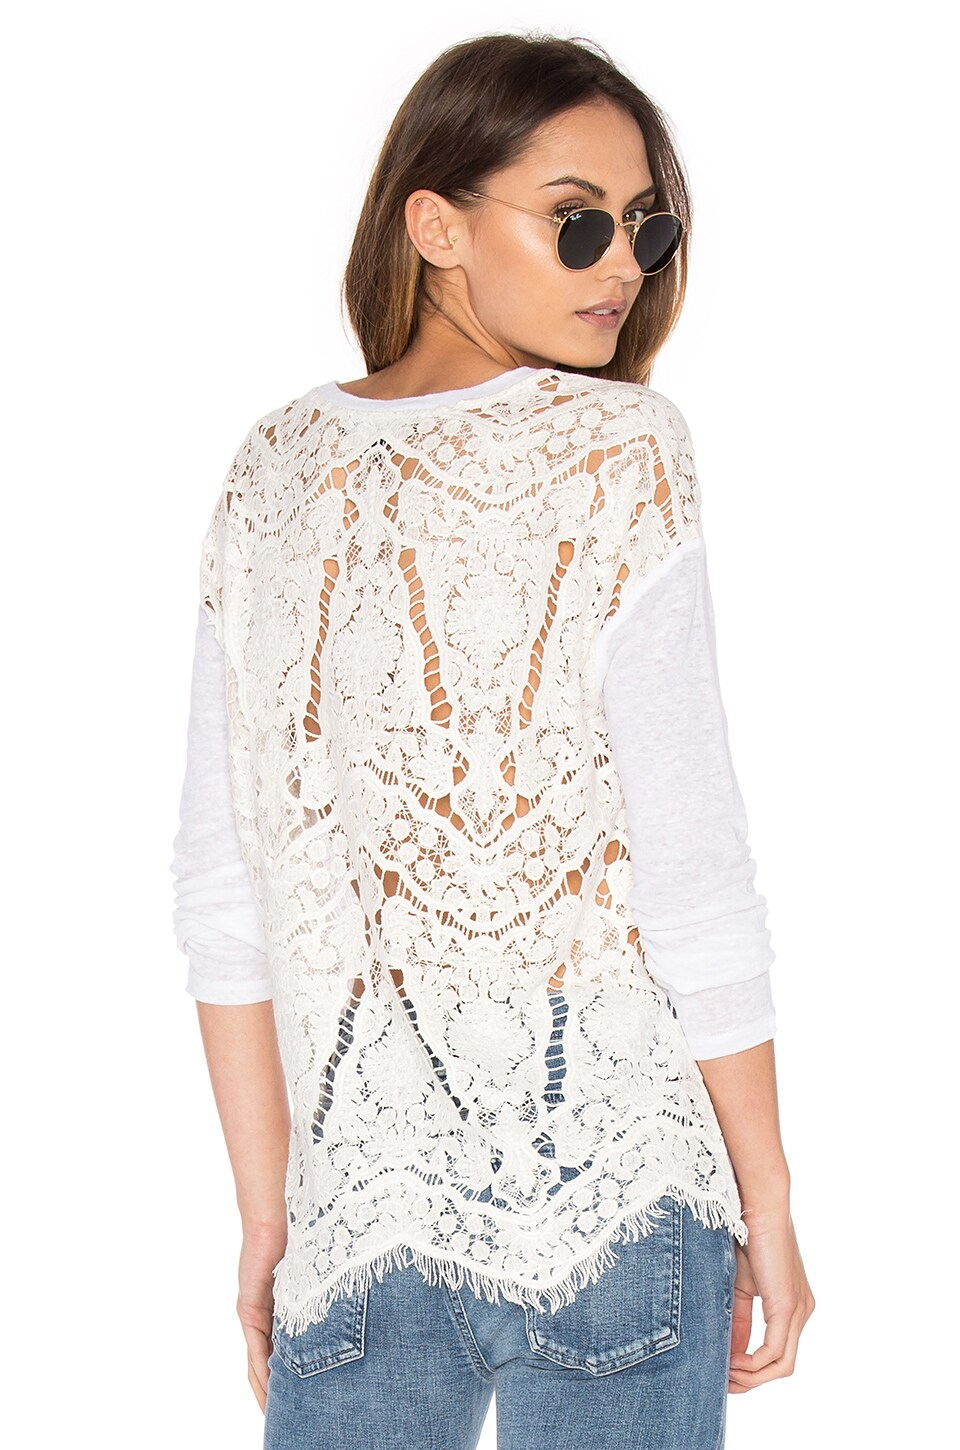 Nyla Embroidered Top by Generation Love